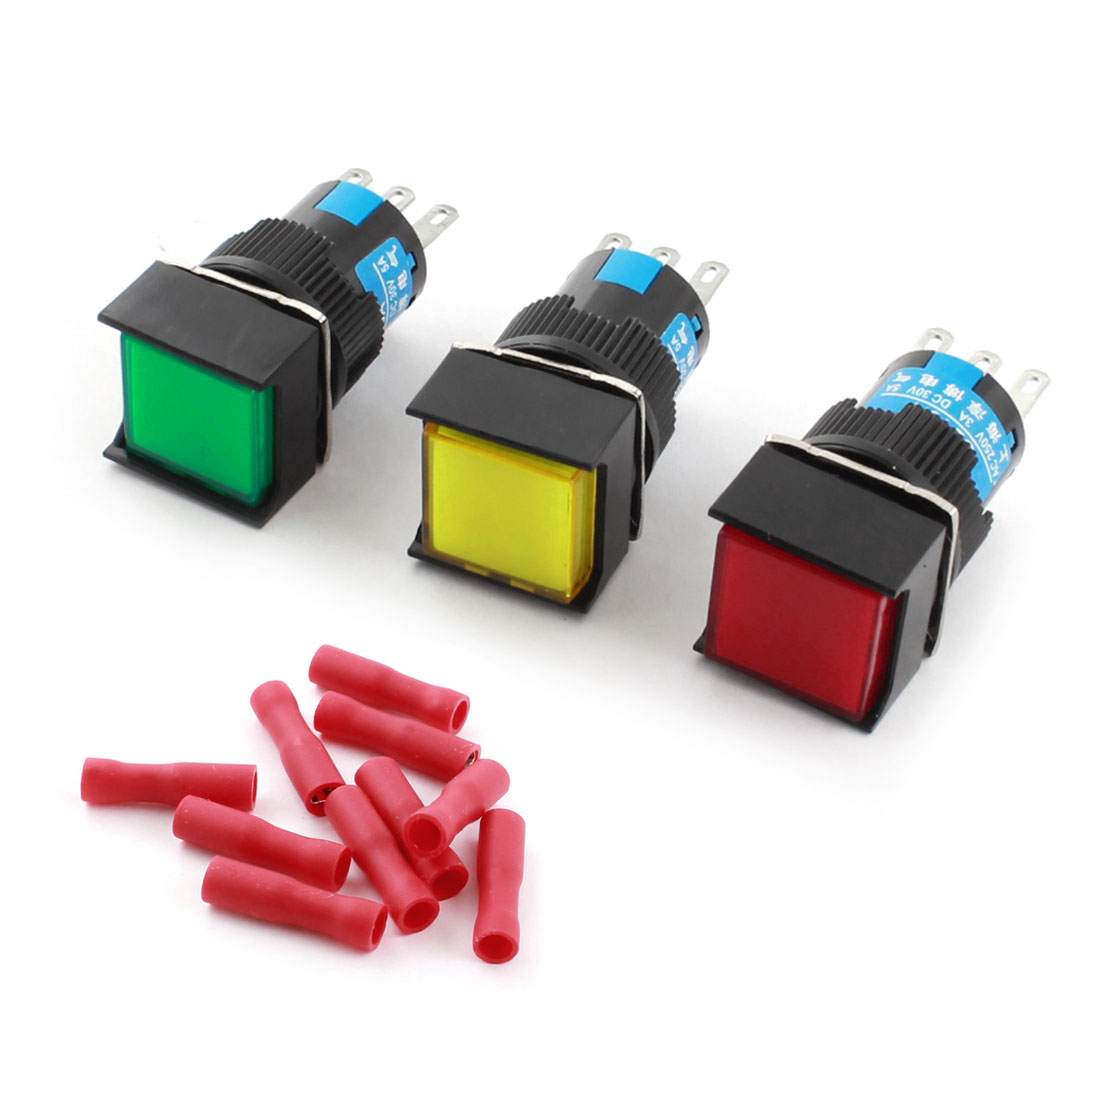 3pcs AC 250V 3A Latching Square Push Button Switch w Spade Connector